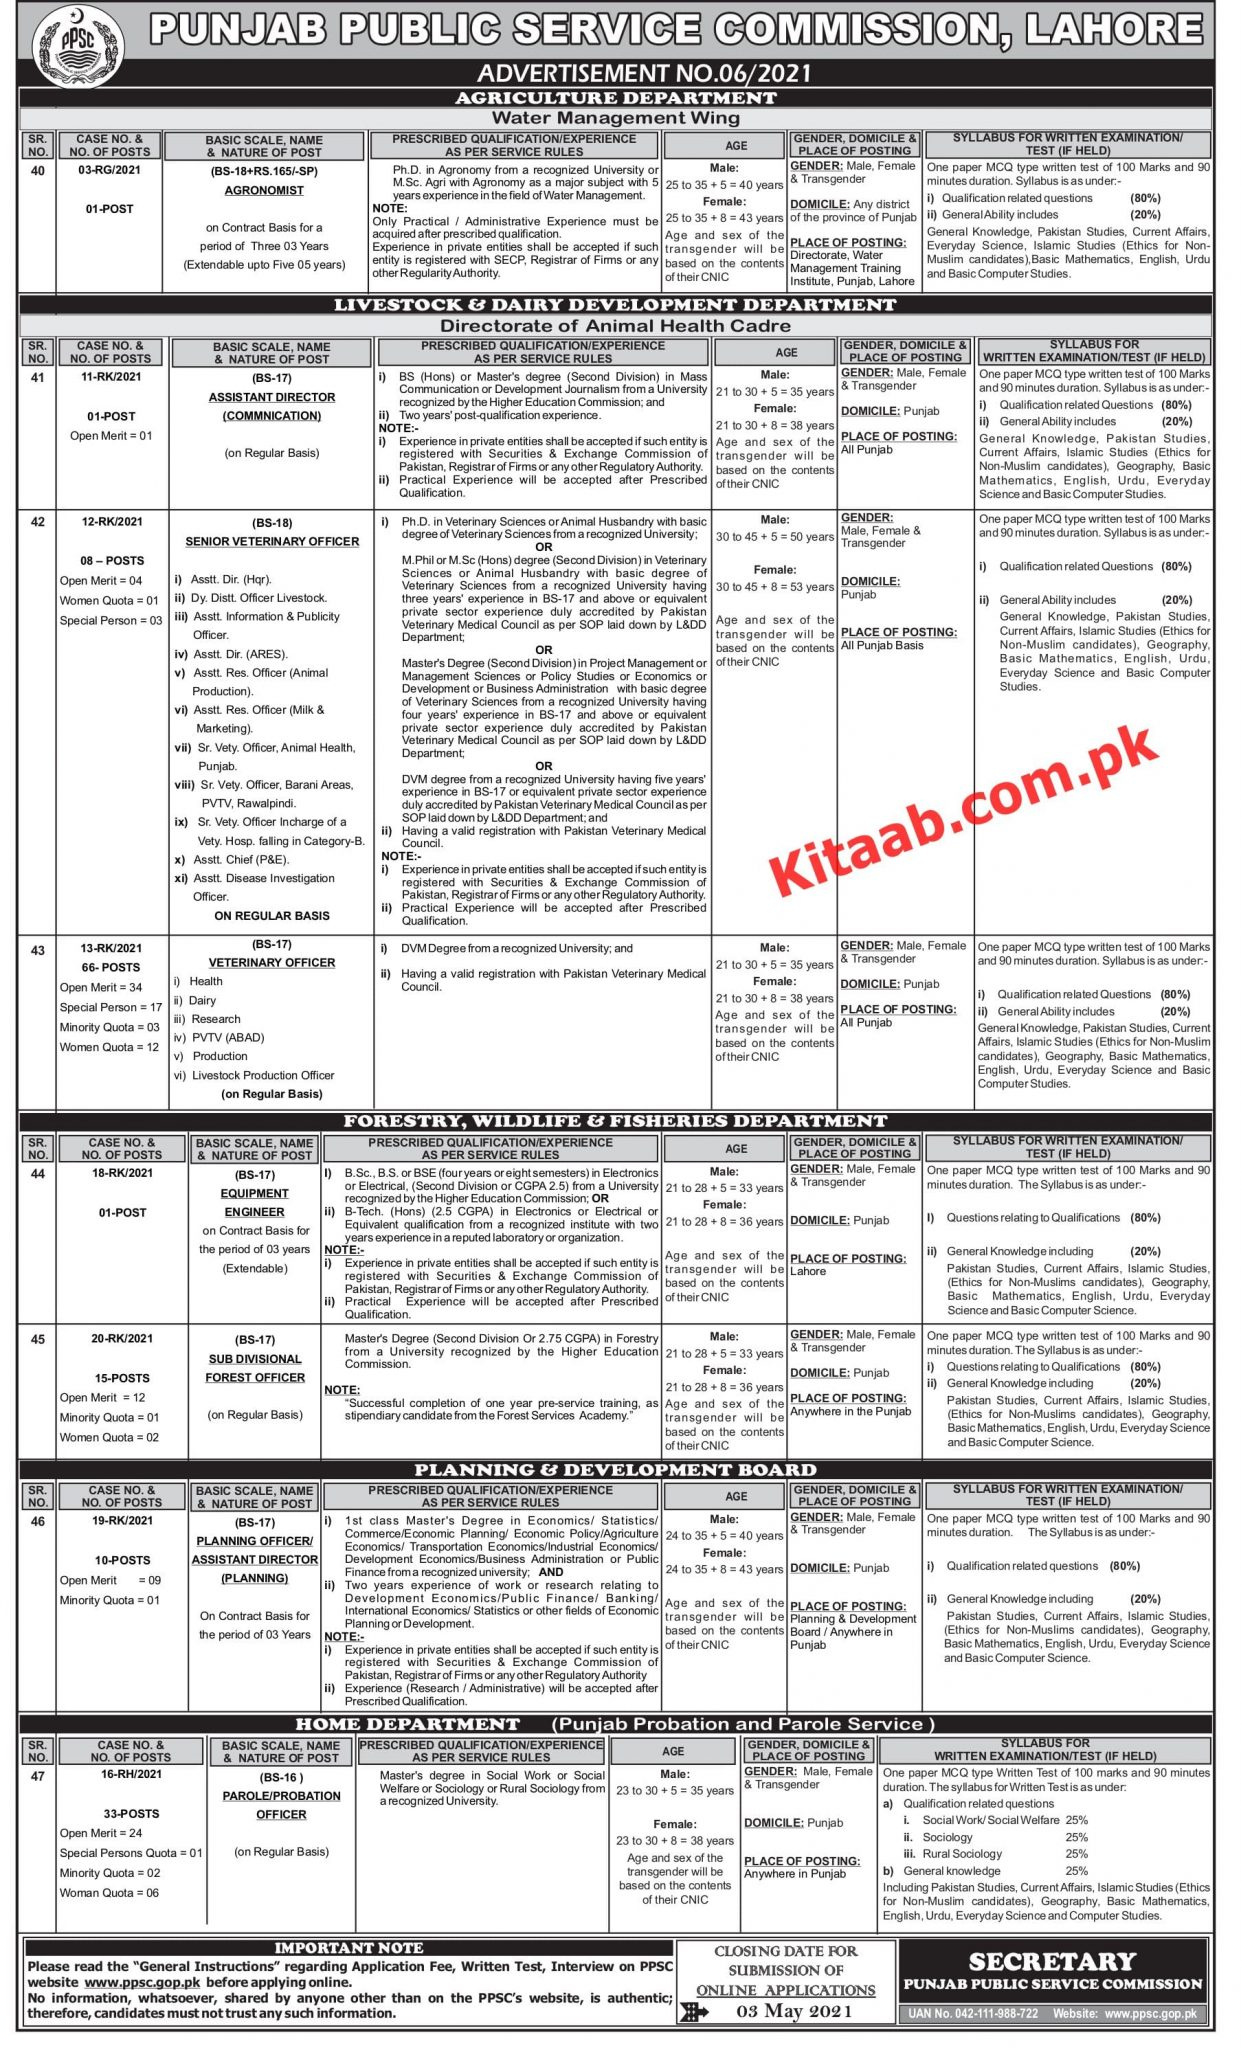 PPSC Agriculture Officer Jobs 2021 Apply Online Eligibility Criteria Instruction and Procedure